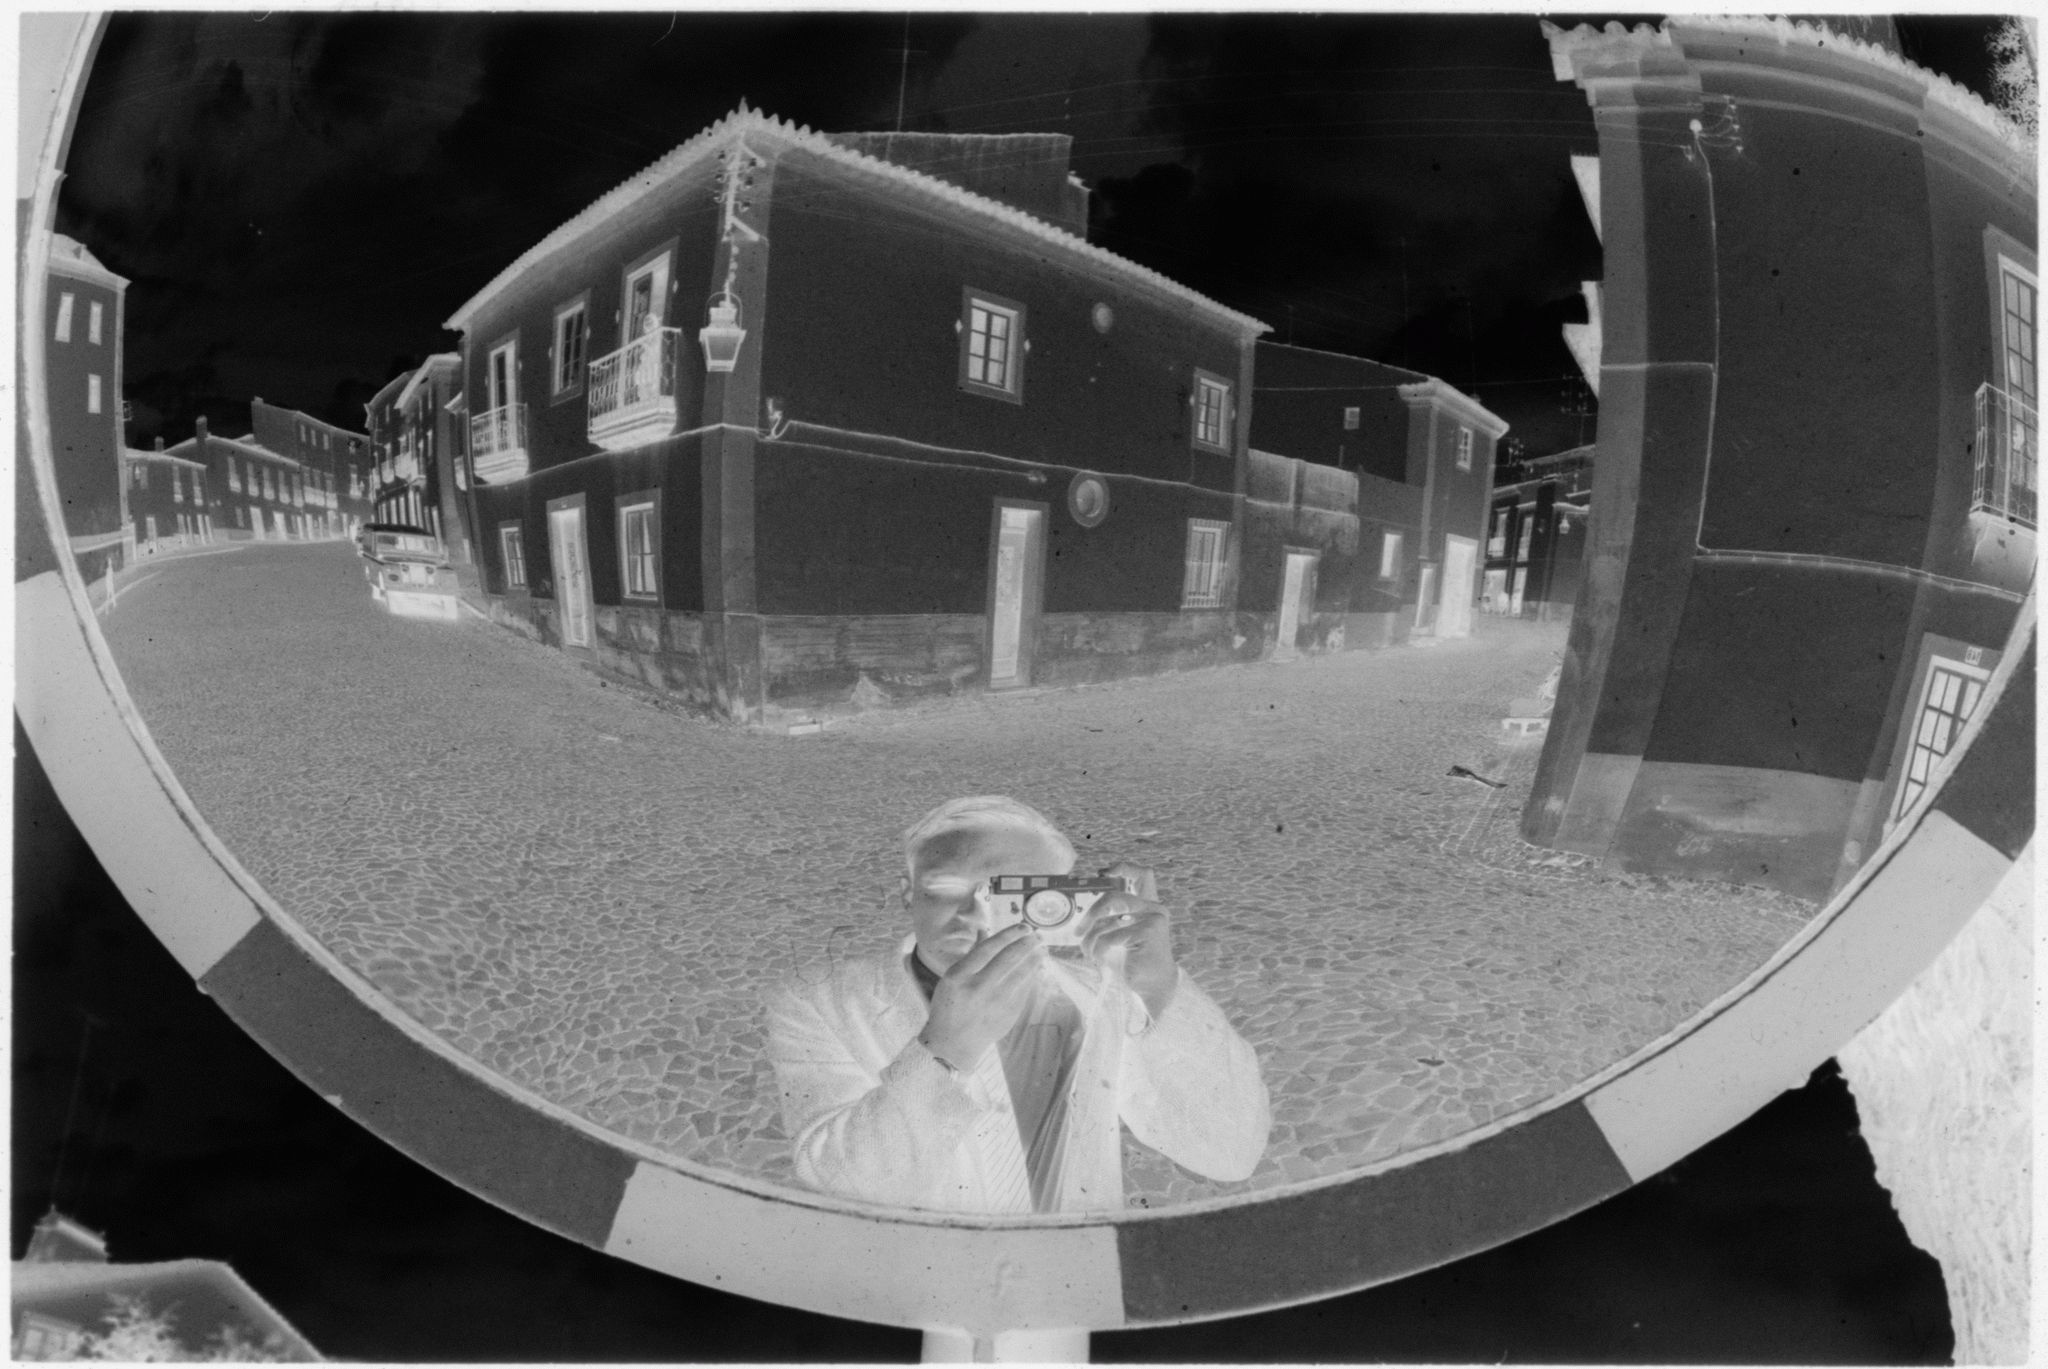 Untitled (Reflection Of Gordon Gahan And The Intersection Of Stone Streets In Convex Mirror, Nazaré, Portugal)